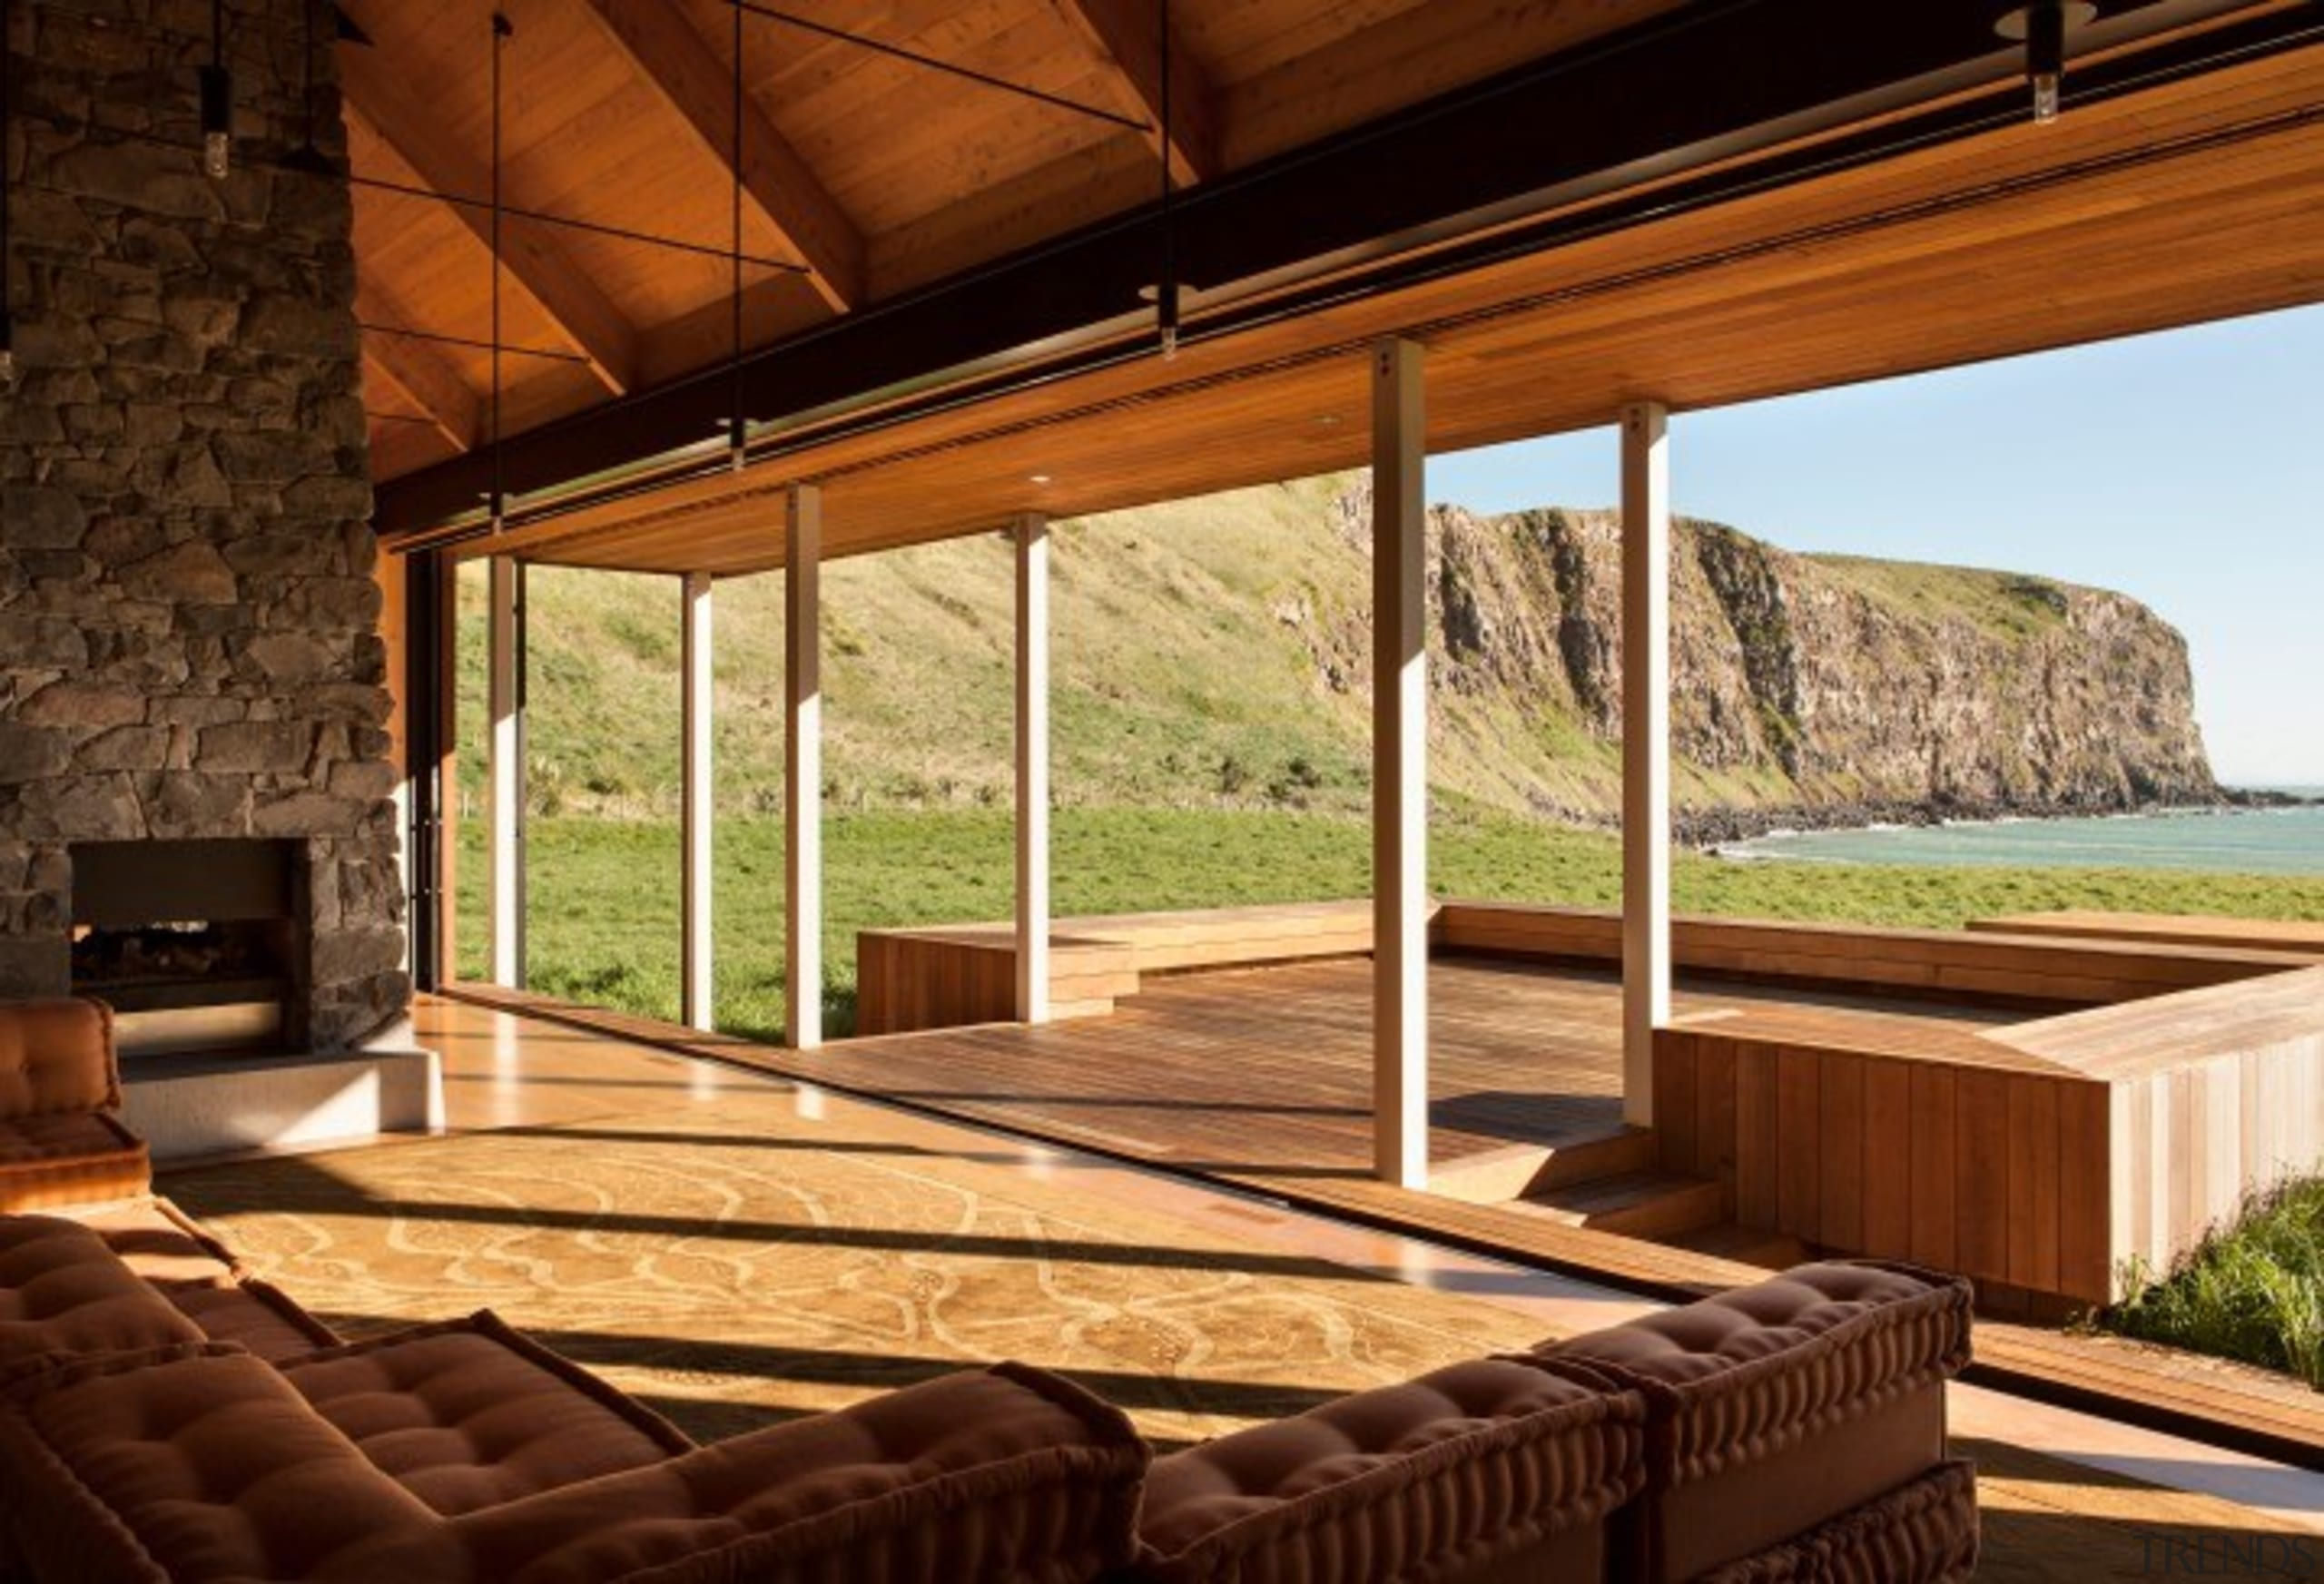 Annandale Banks Peninsula, New Zealand - architecture | architecture, building, ceiling, deck, floor, furniture, hardwood, home, house, interior design, log cabin, porch, property, real estate, roof, room, shade, wood, wood stain, brown